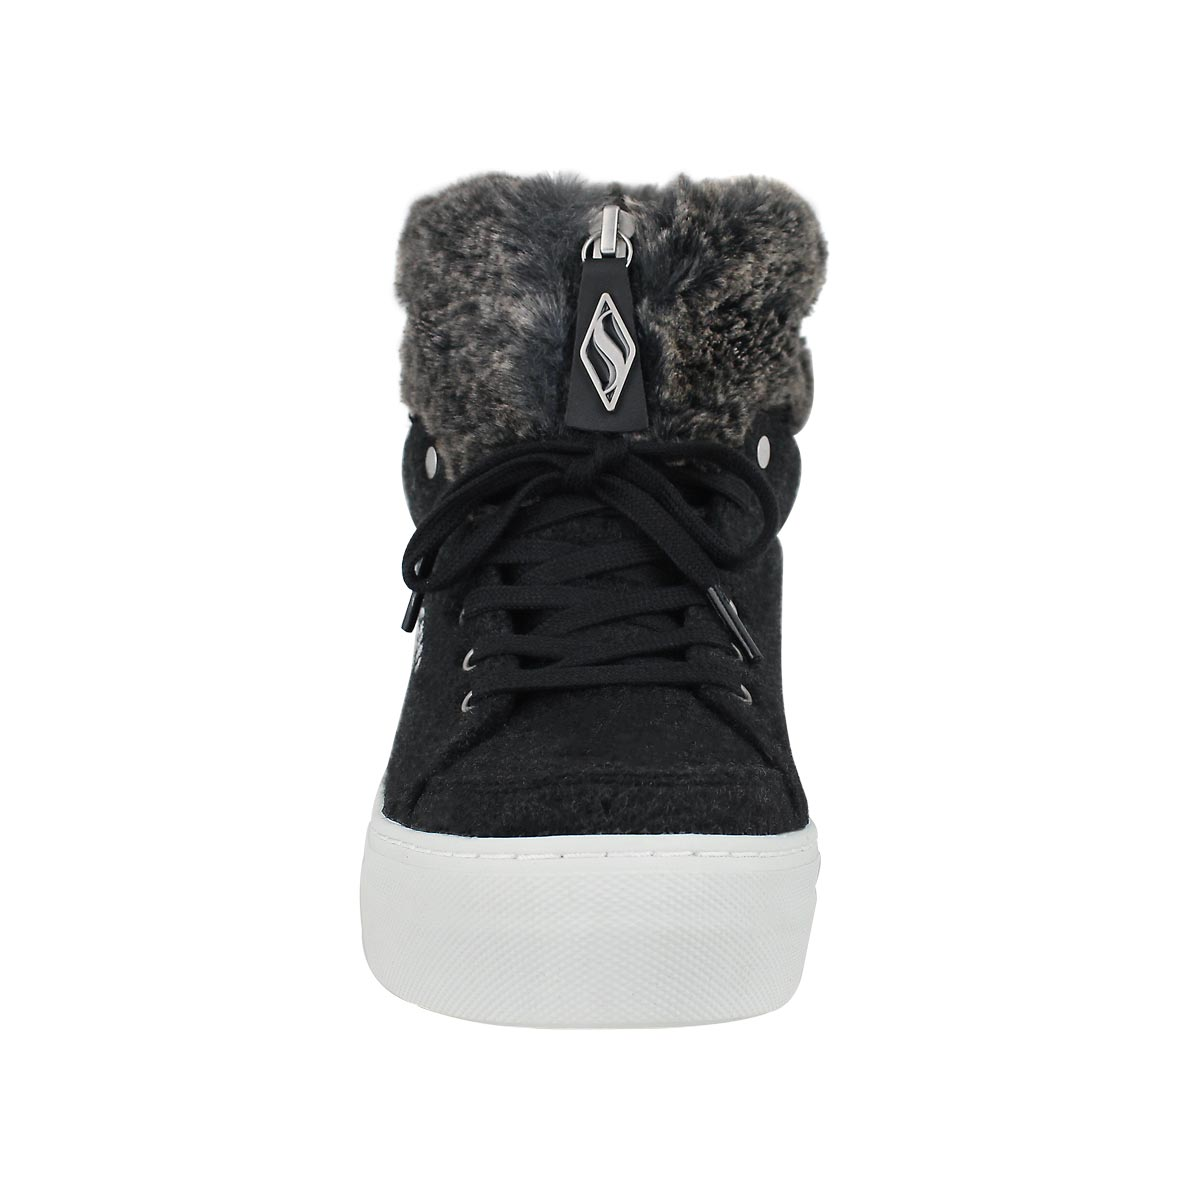 Lds Alba blk lace up snkr boot